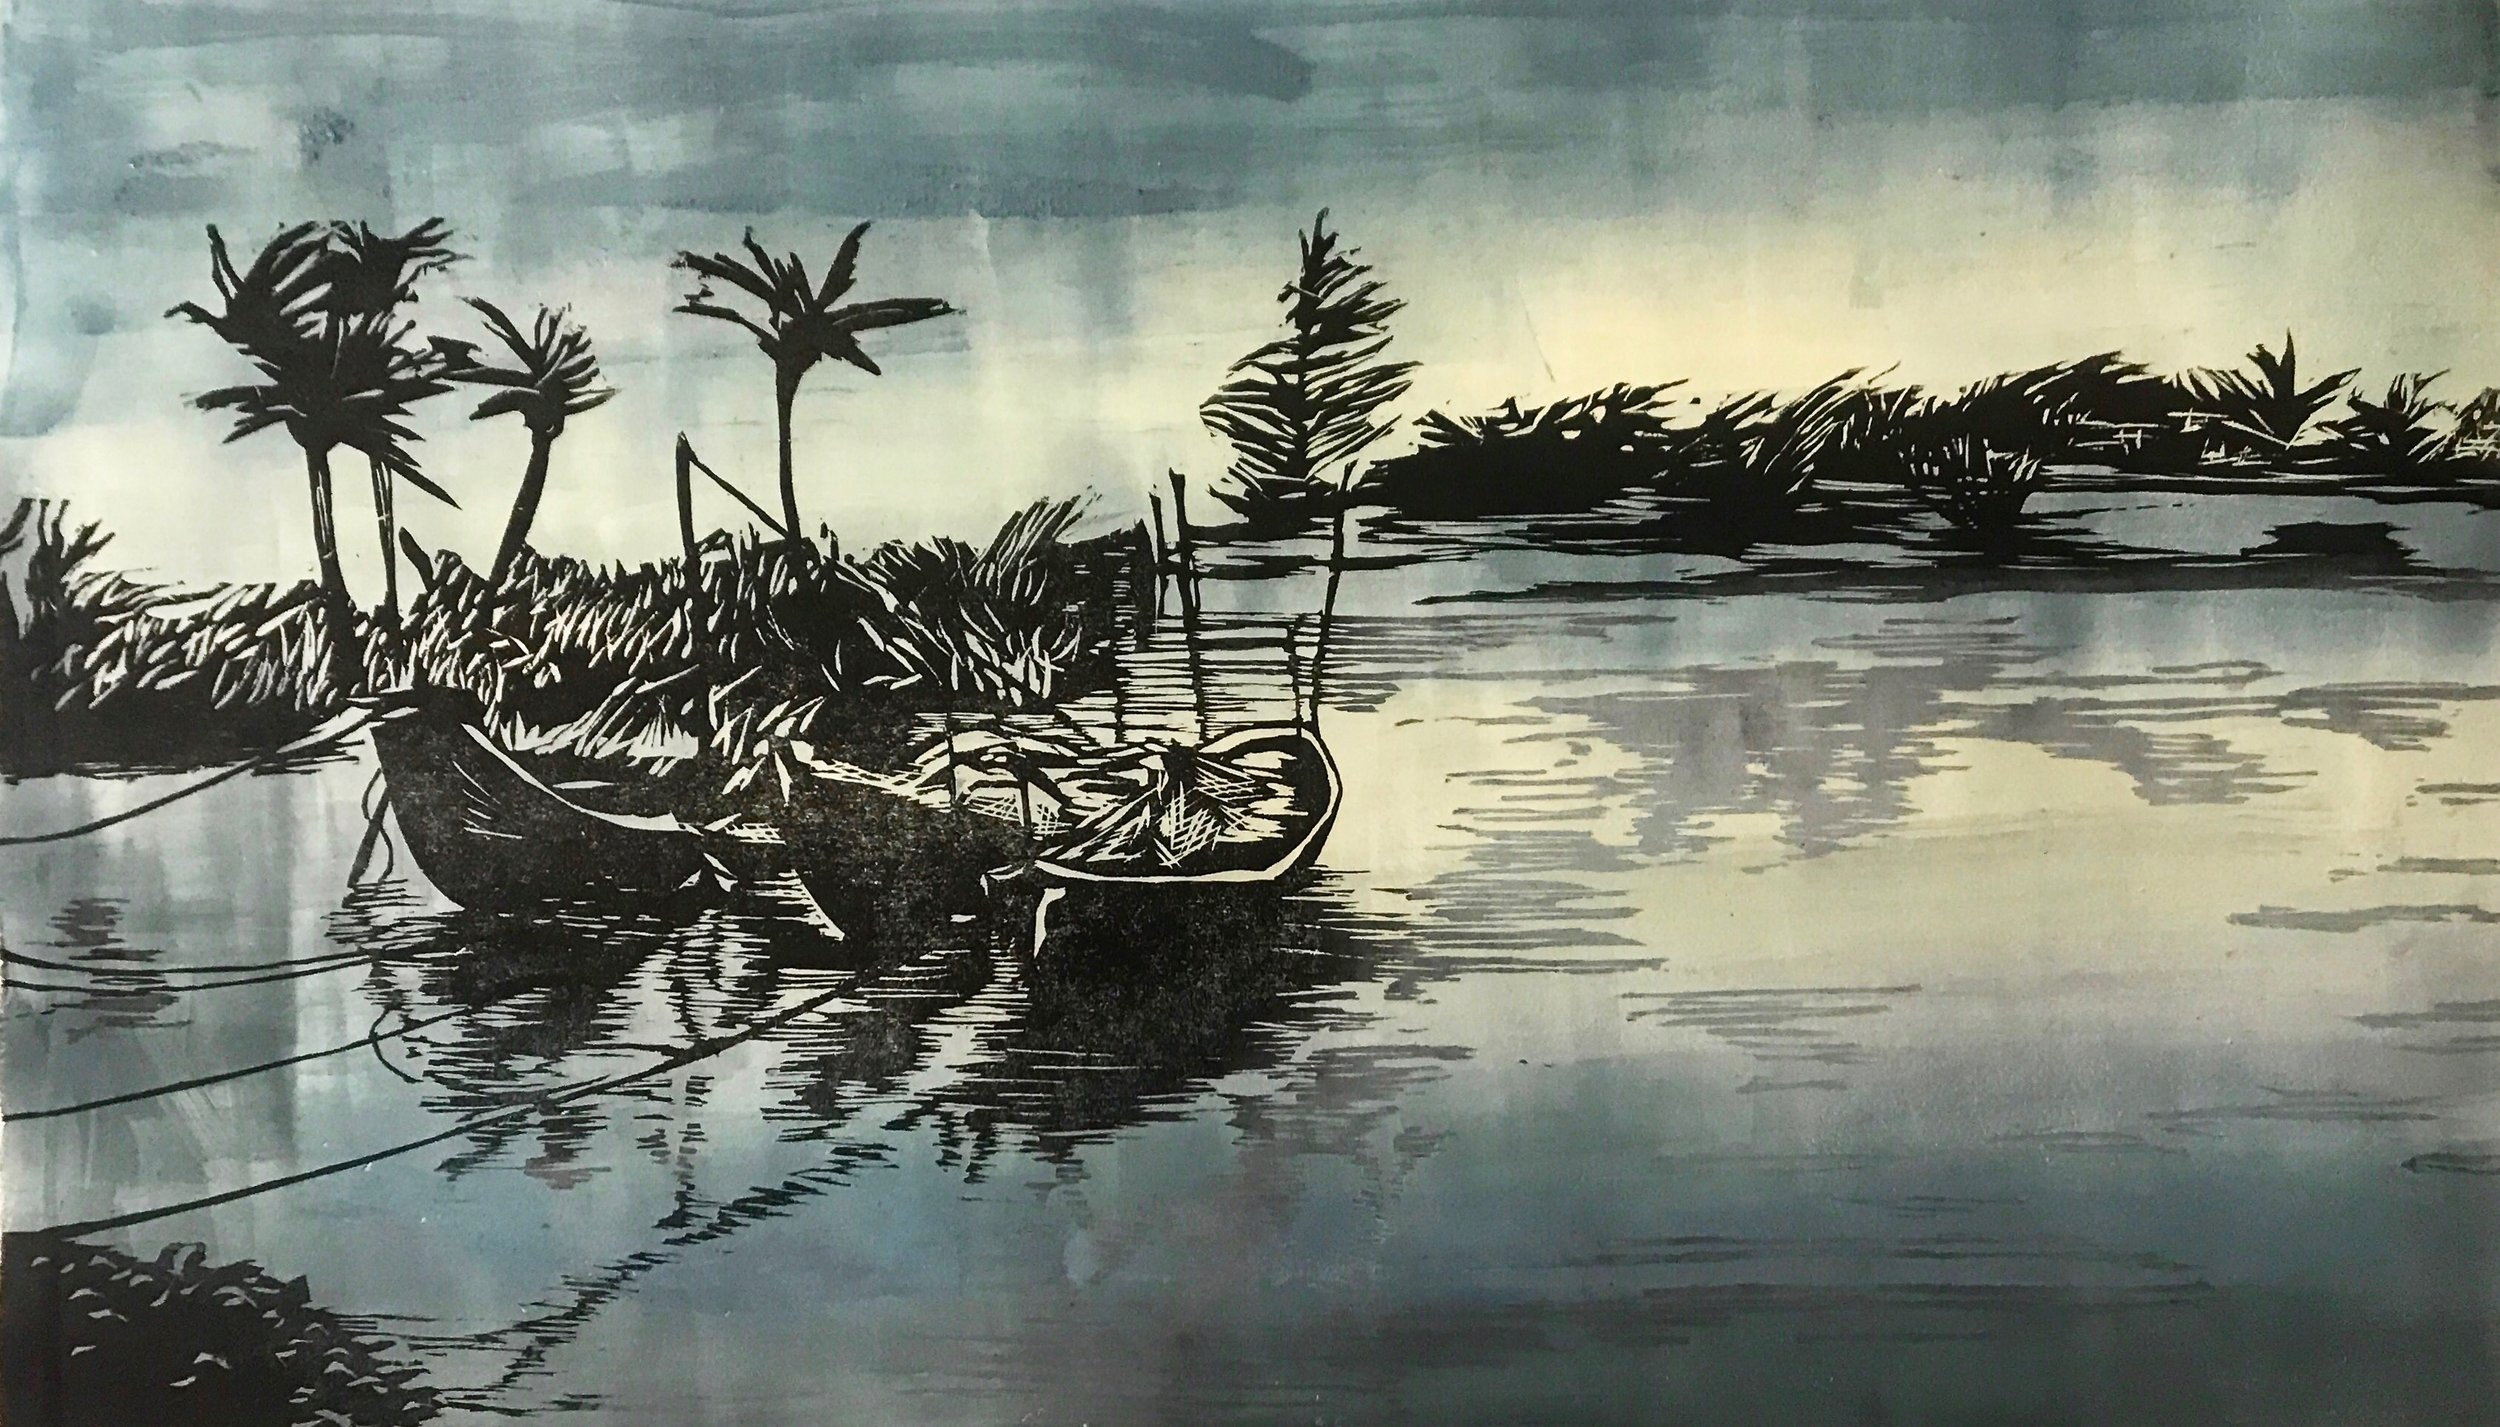 Hoi An, Vietnam II   Woodcut and Monotype, Fabriano Paper 220 gms   Image Size: 50cm x 70cm (19.68''x 27.55'')   2017